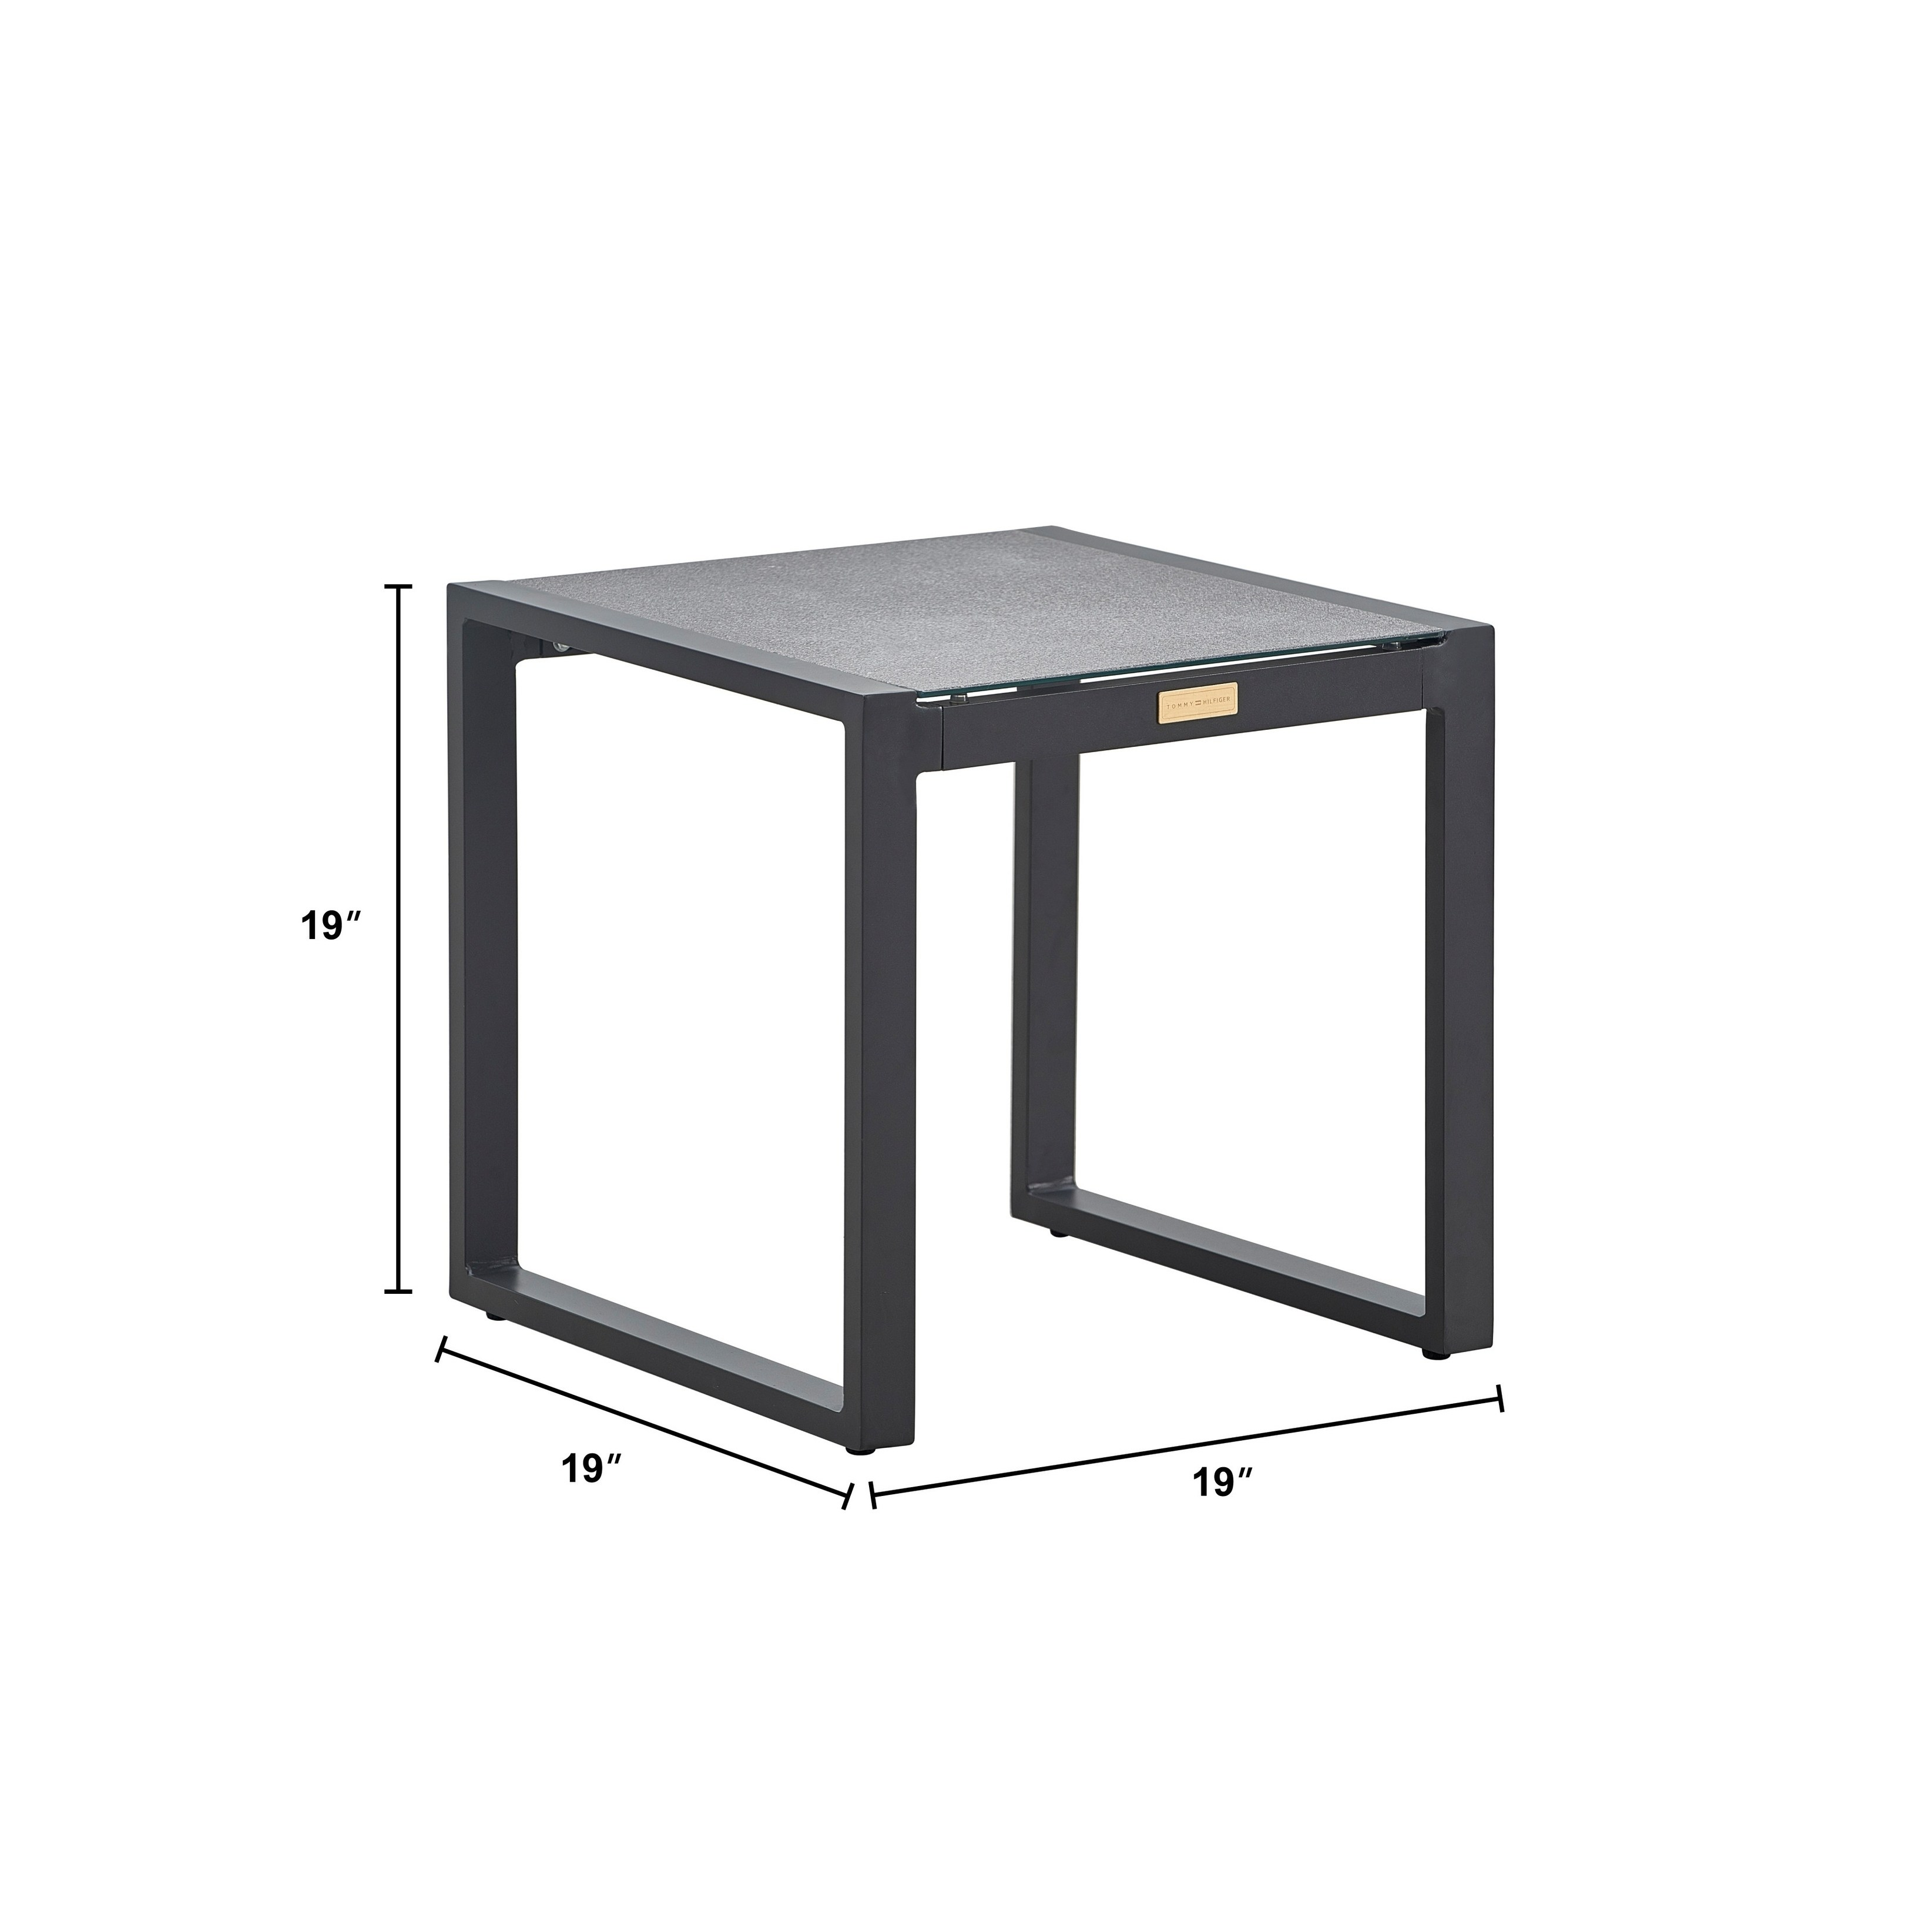 tommy hilfiger hampton outdoor side table with pebbled glass natural gray metal free shipping today diy living room round ikea macys tablecloth brass end top small outside